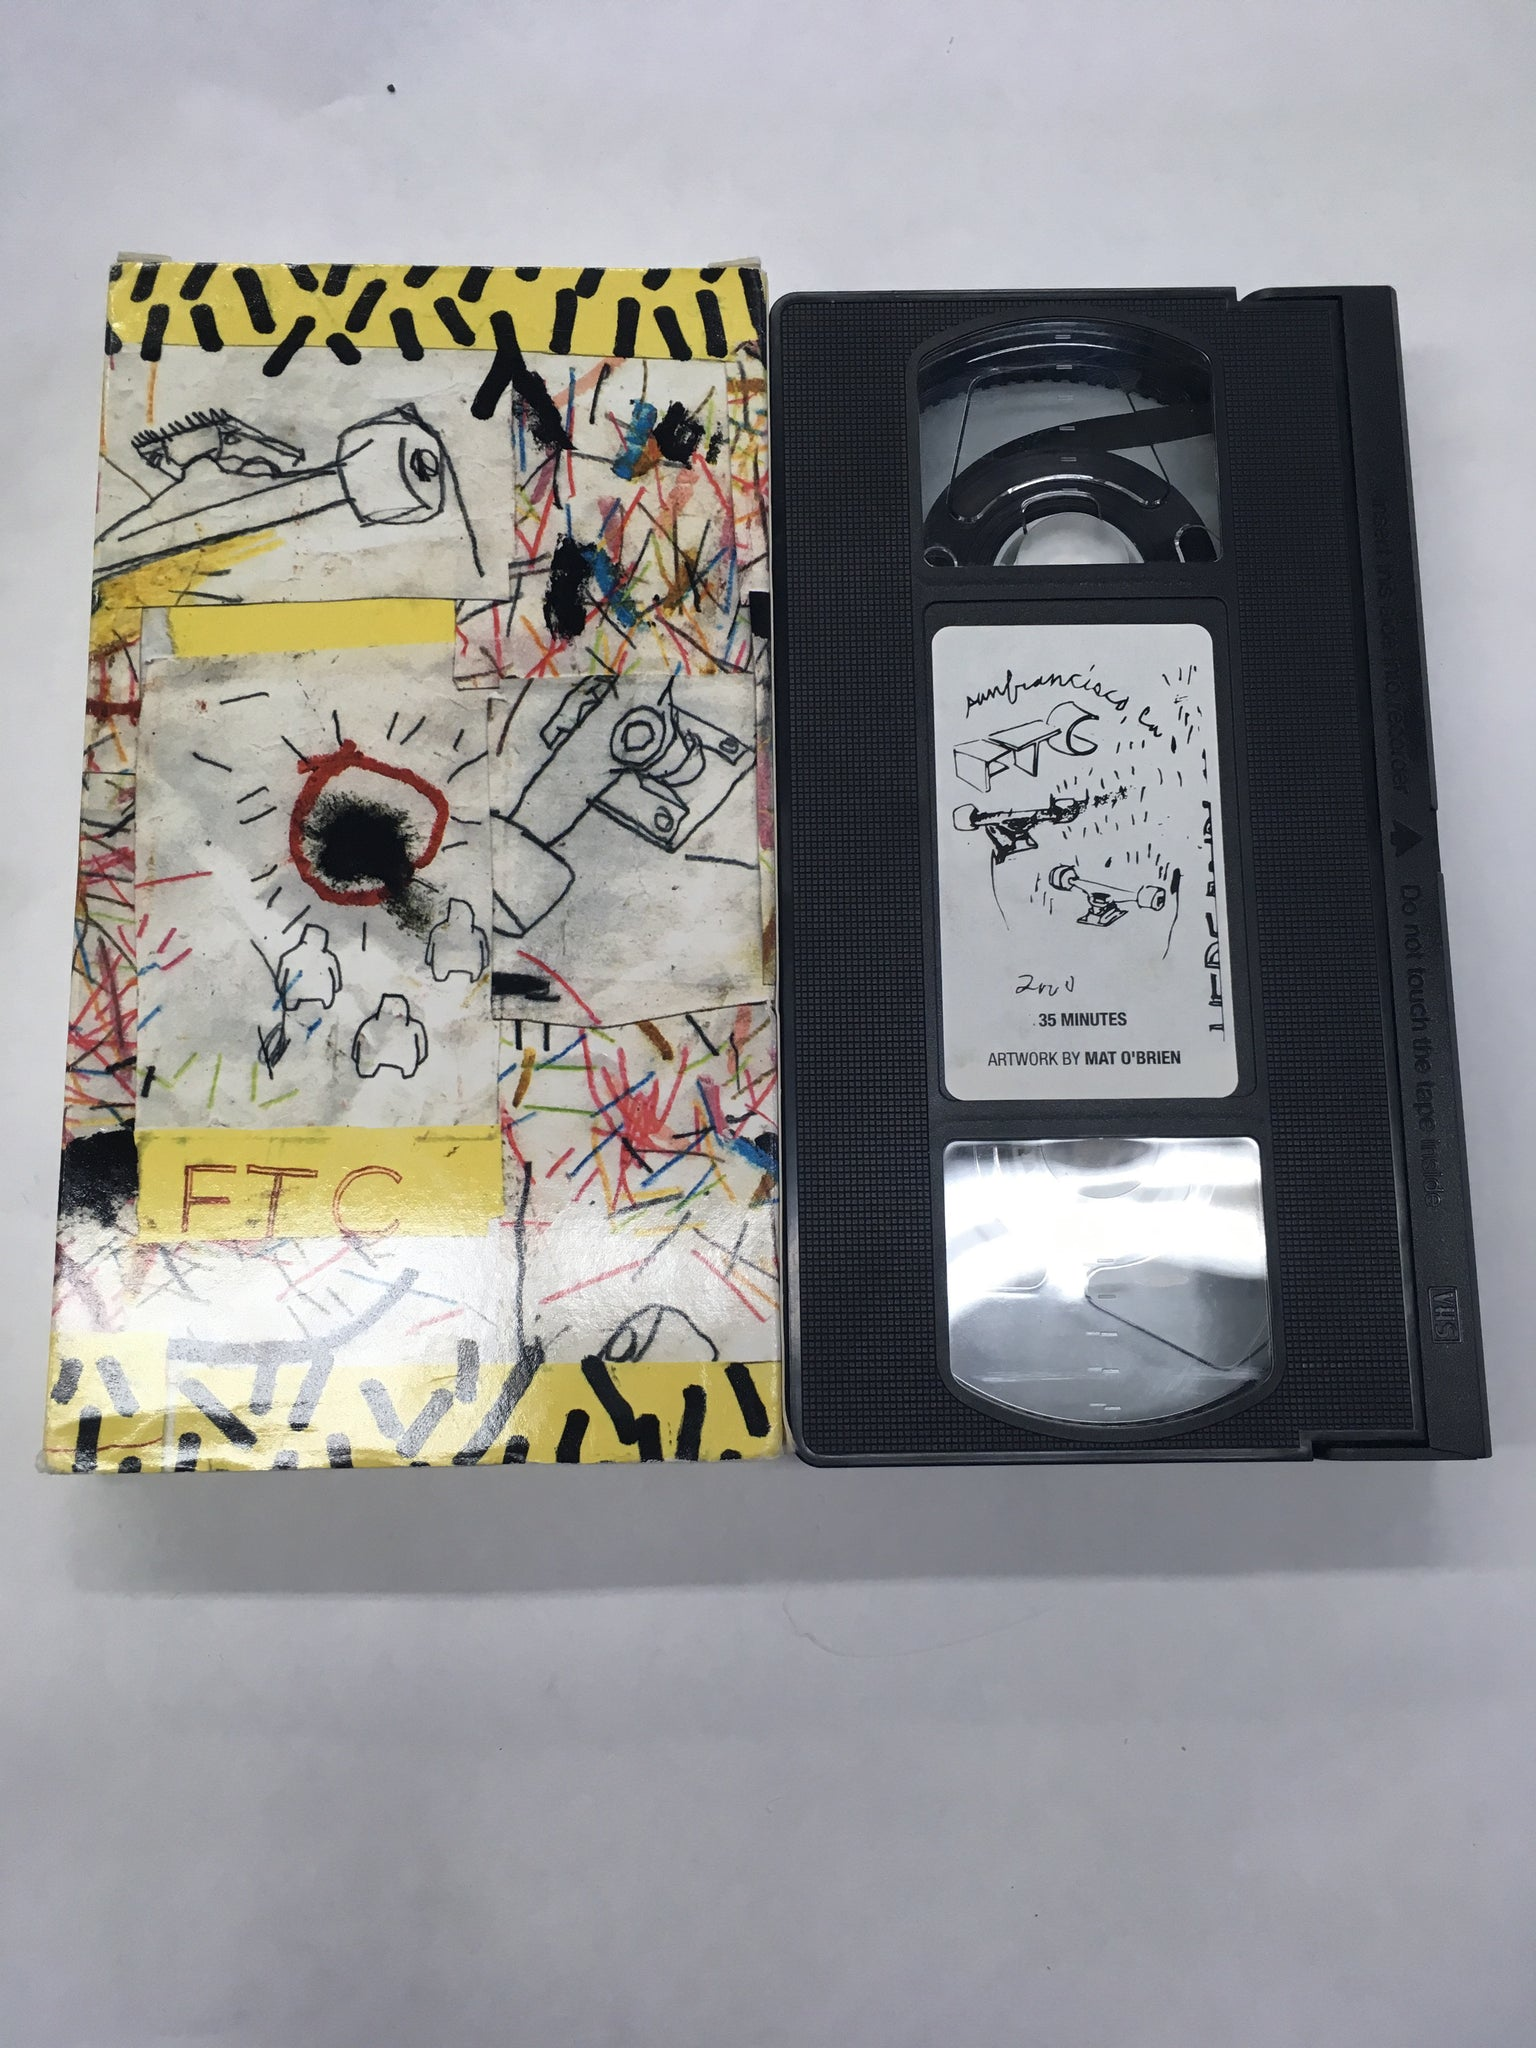 FTC VHS Tape